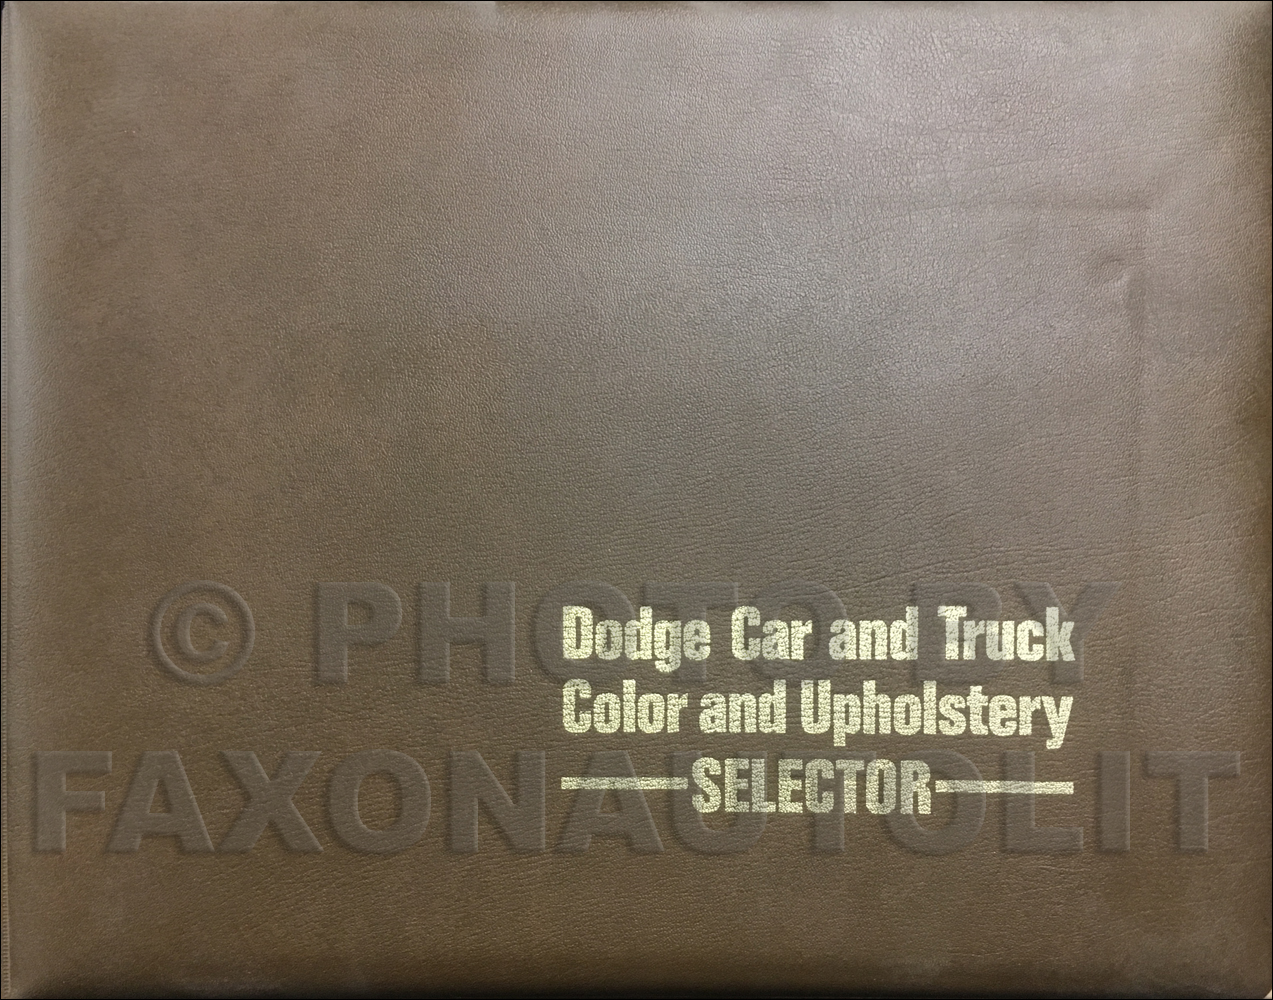 1972 Dodge Color & Upholstery Album Original